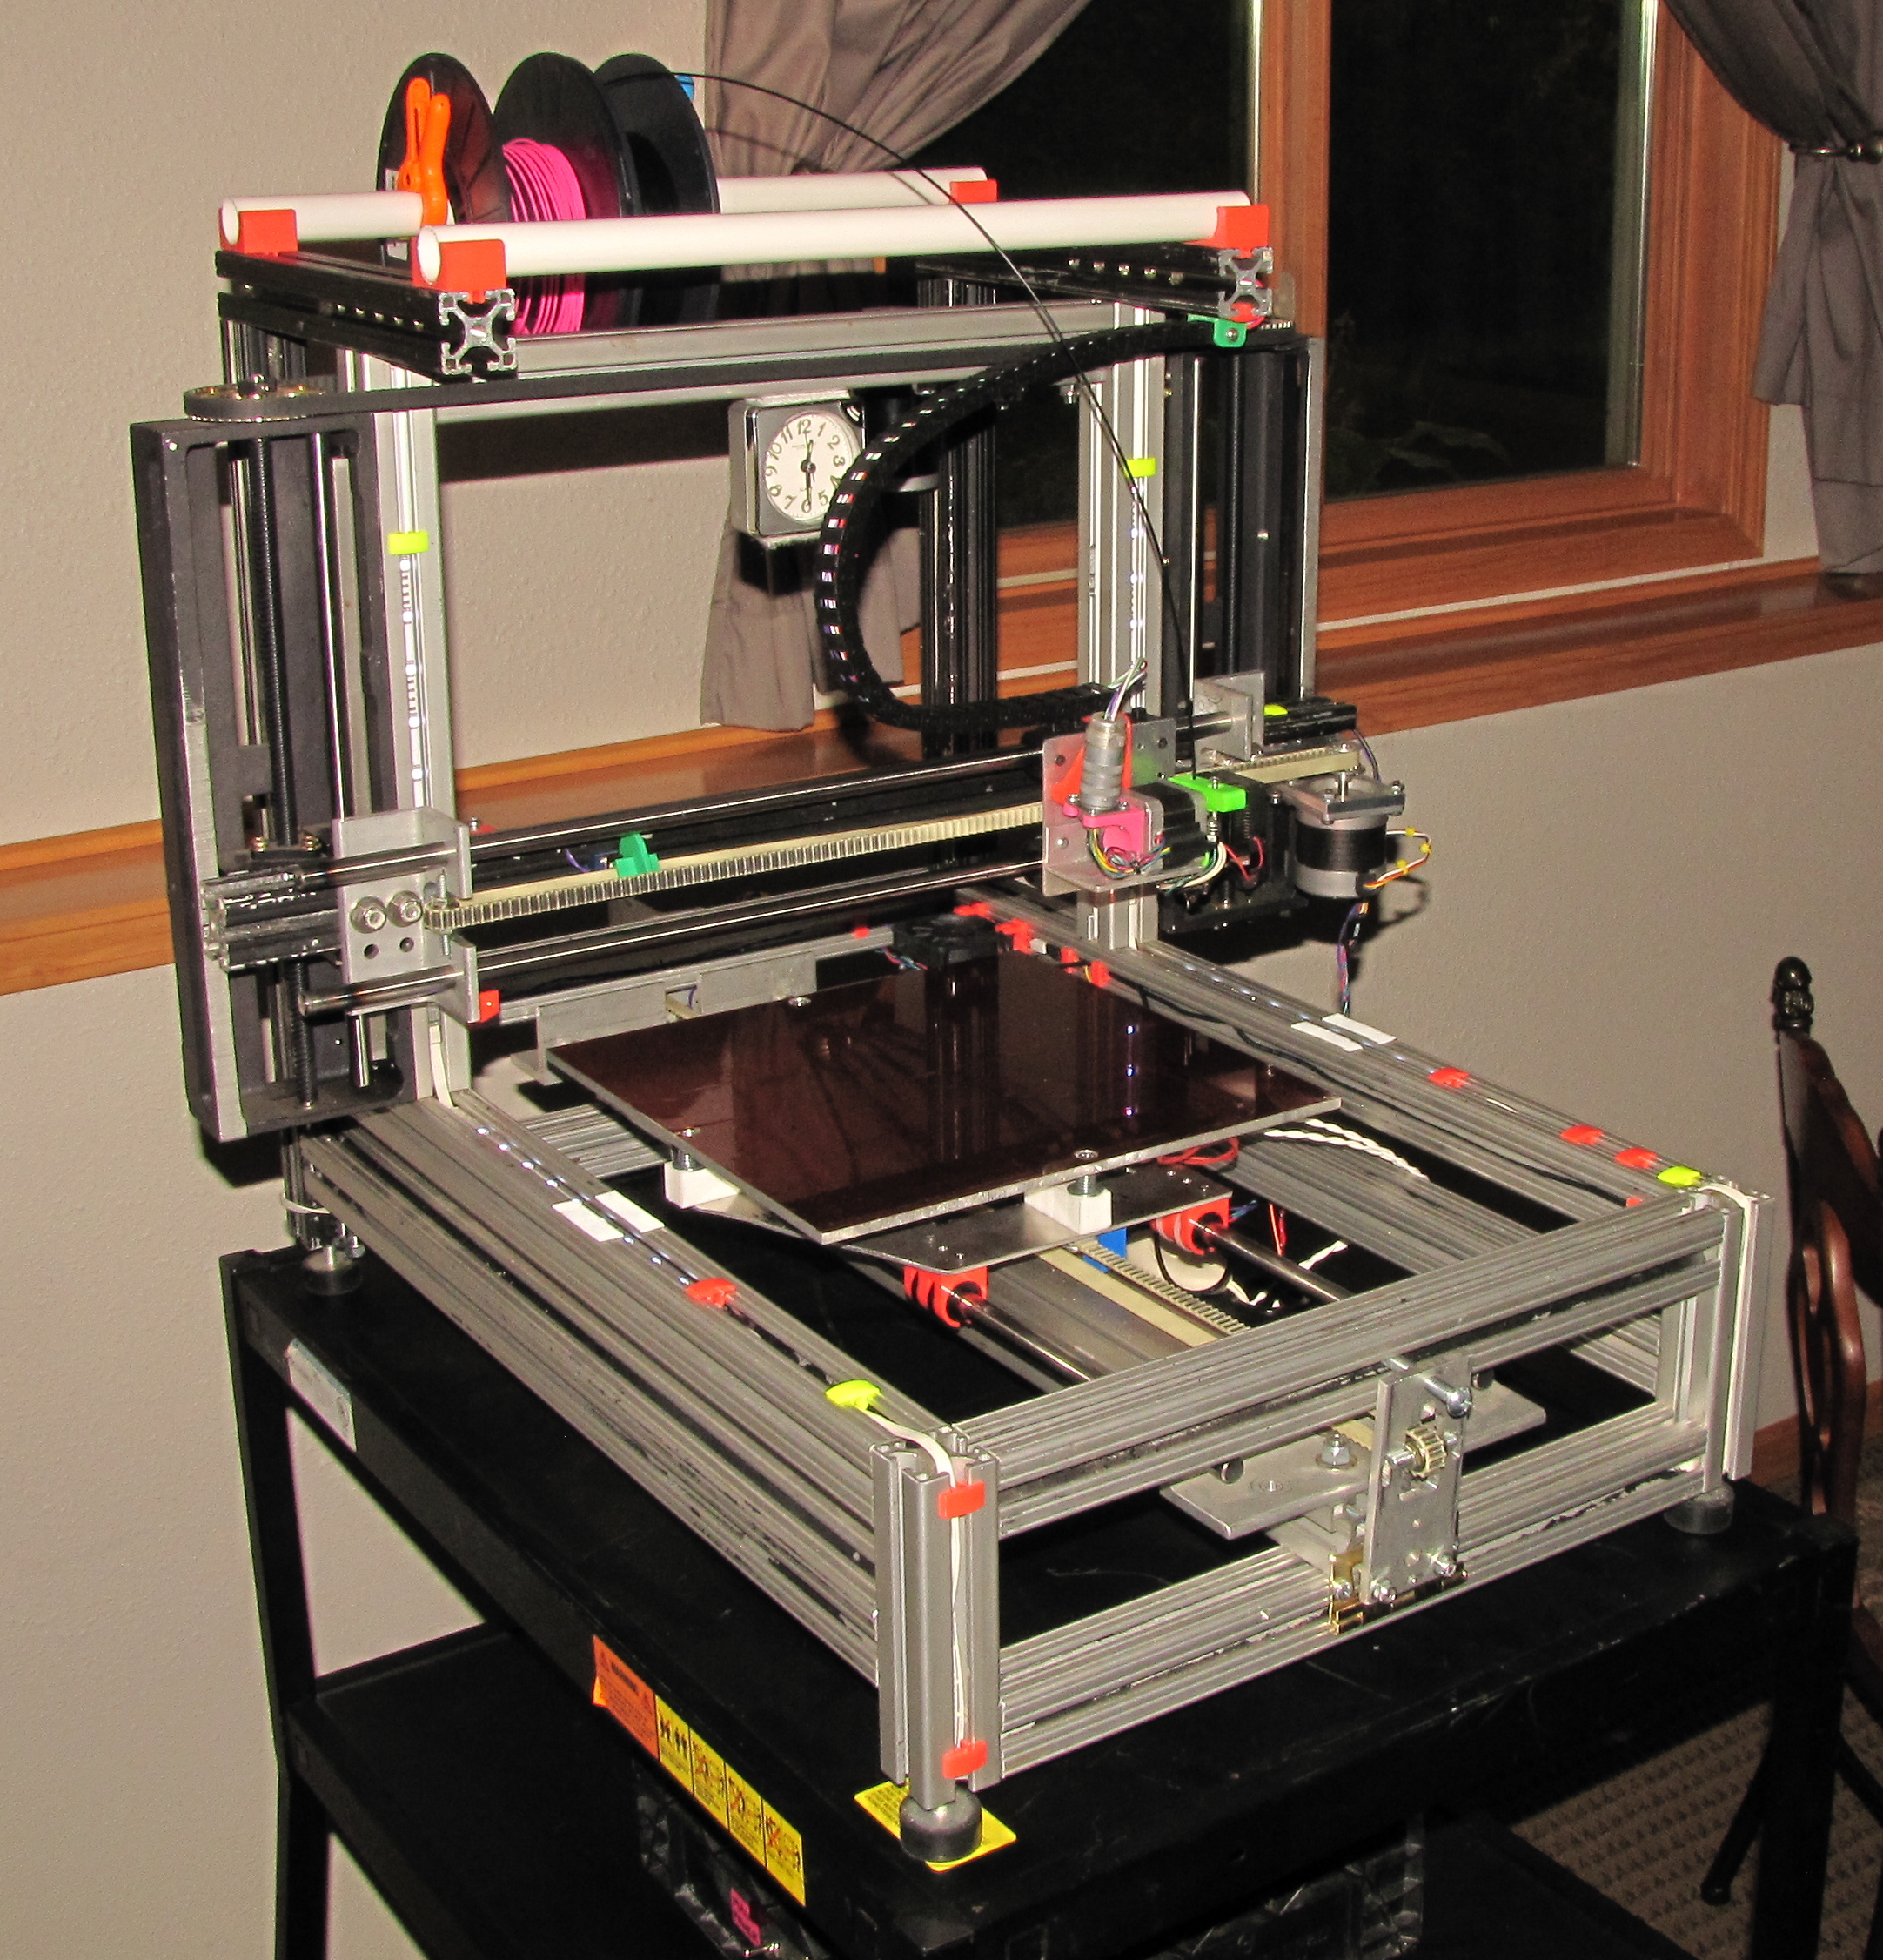 The never-ending 3D printer project